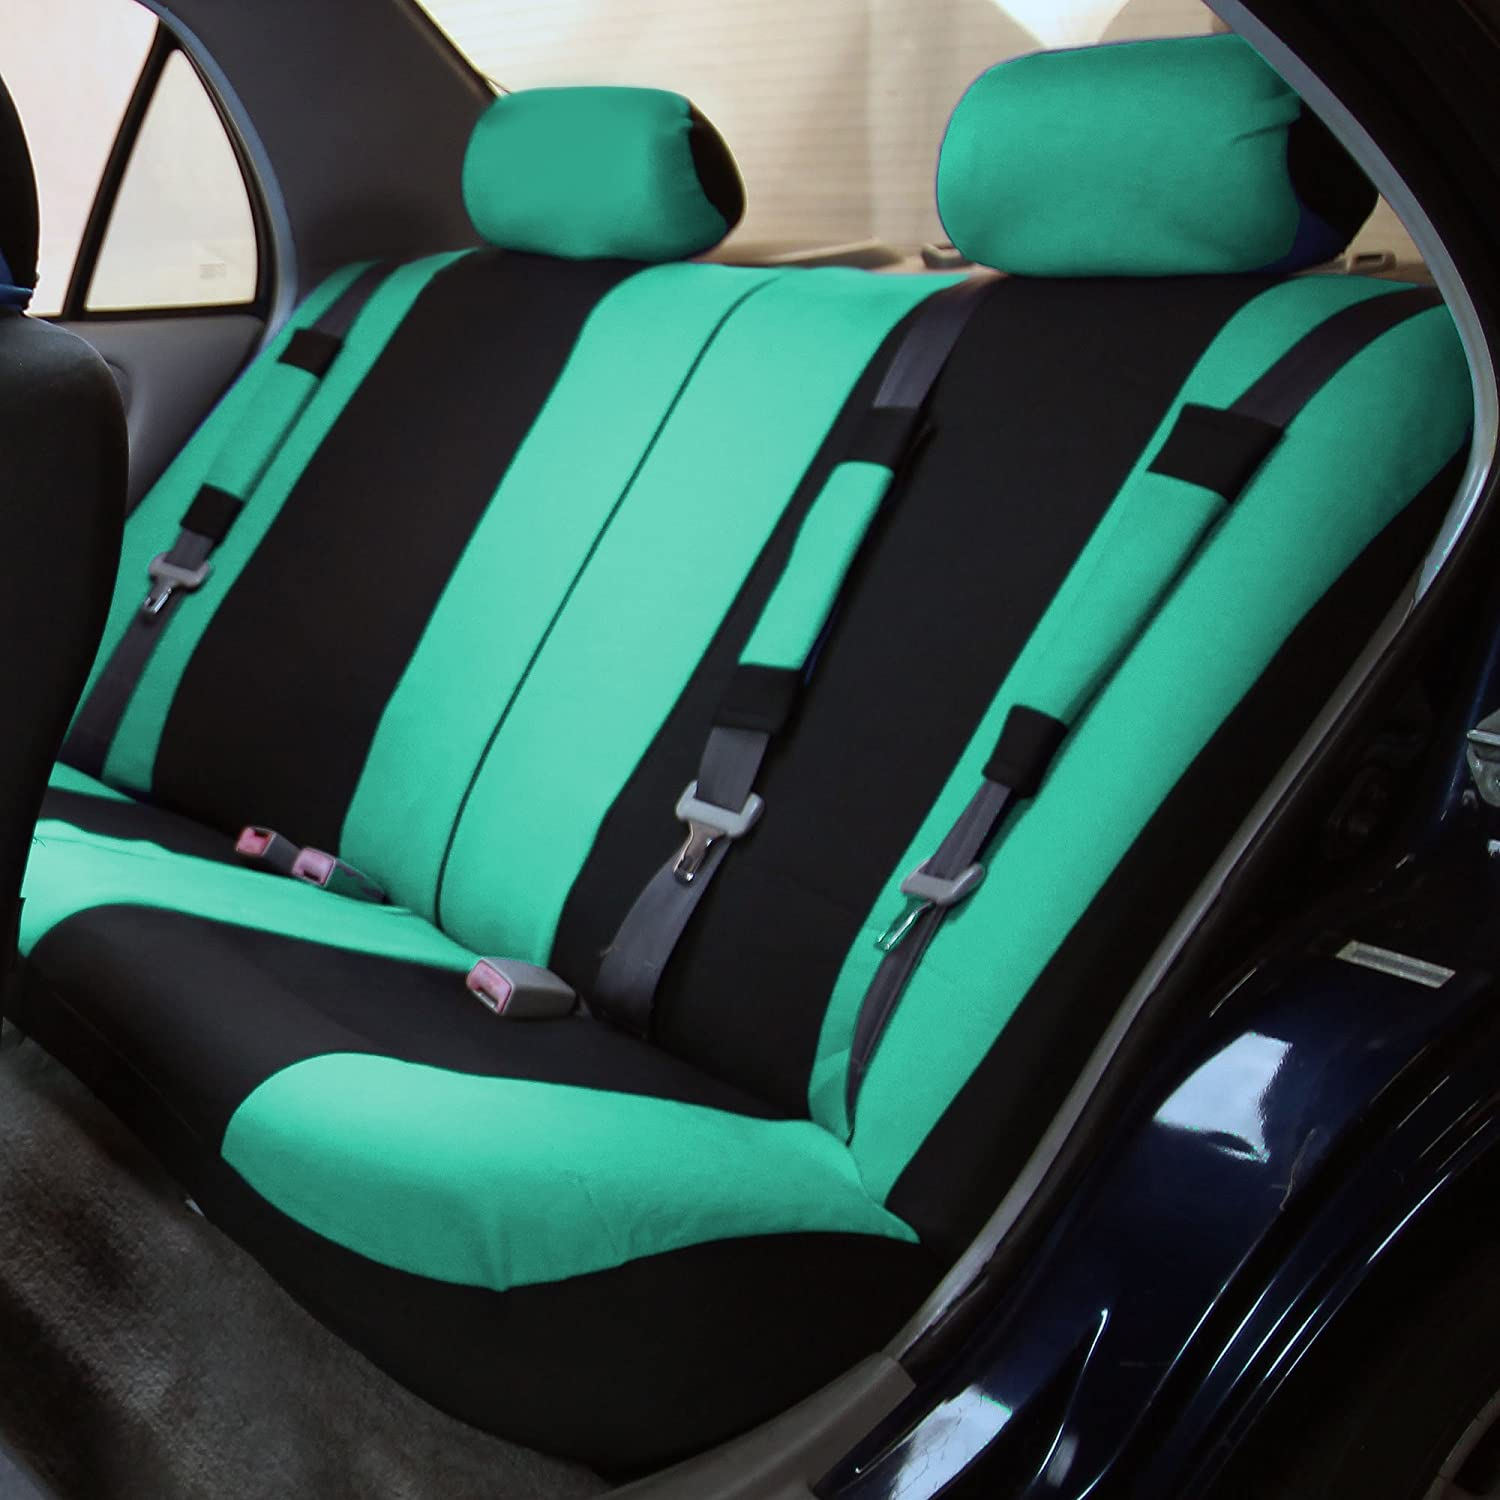 Full Set Car Seat Covers SUV Van Airbag /& Split Ready FH Group Stylish Cloth Truck Pink//Black- Fit Most Car